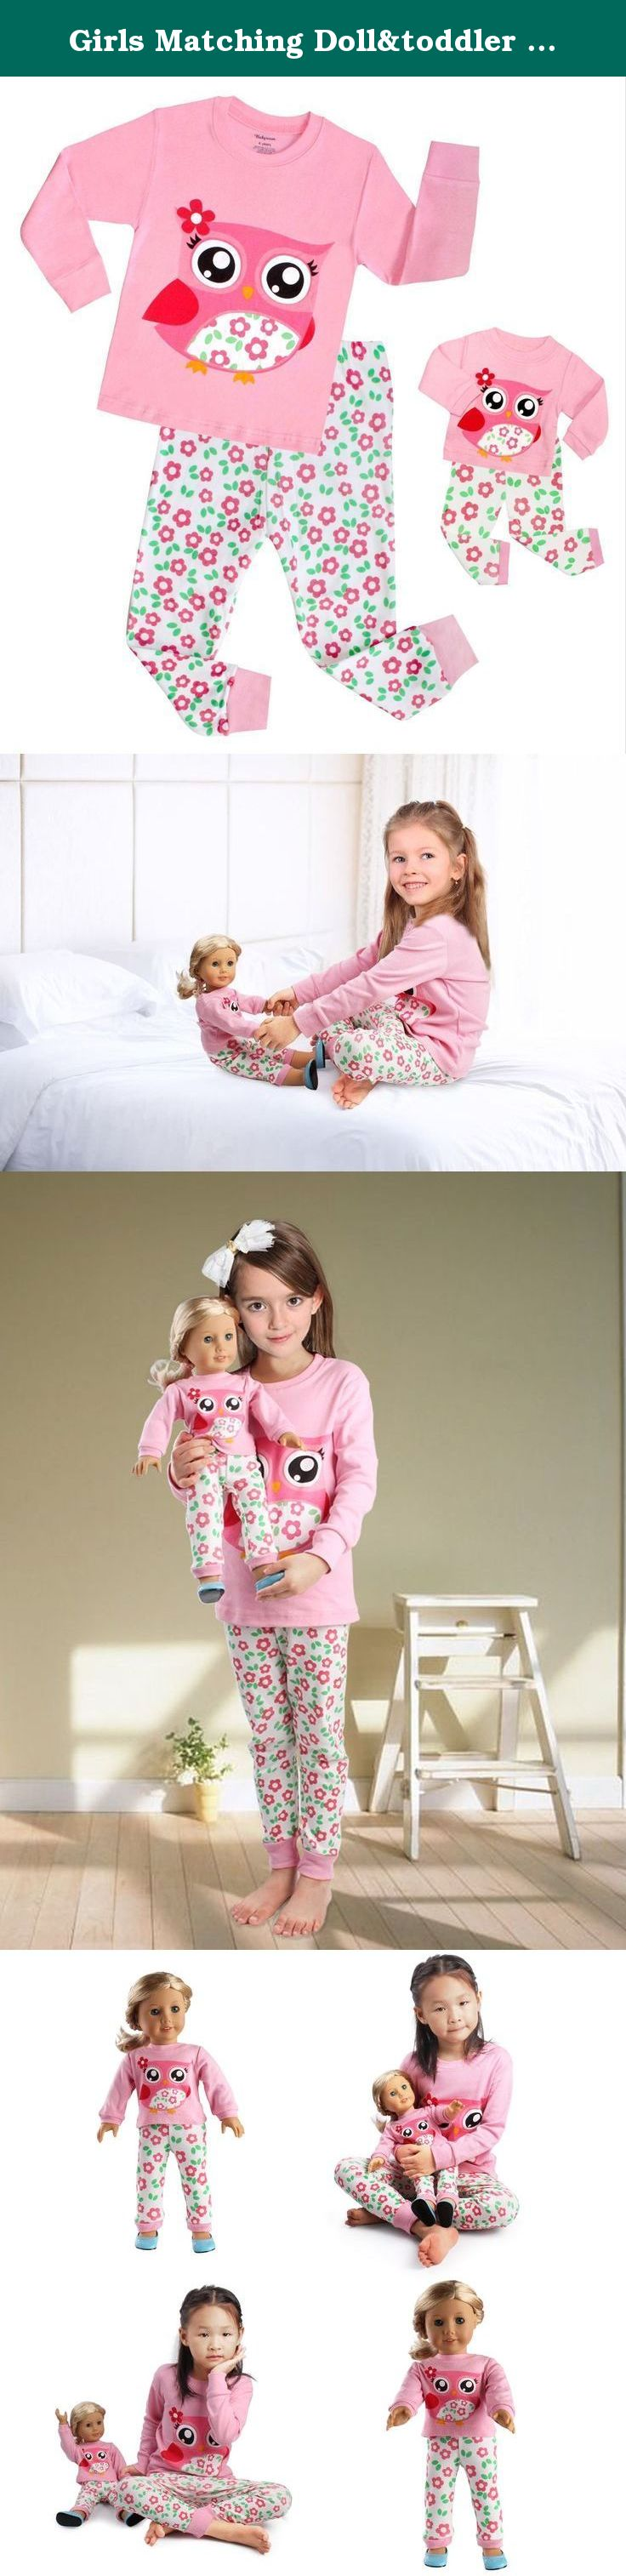 Girls Matching Doll&toddler Owl 4 Piece long cotton Christmas ...